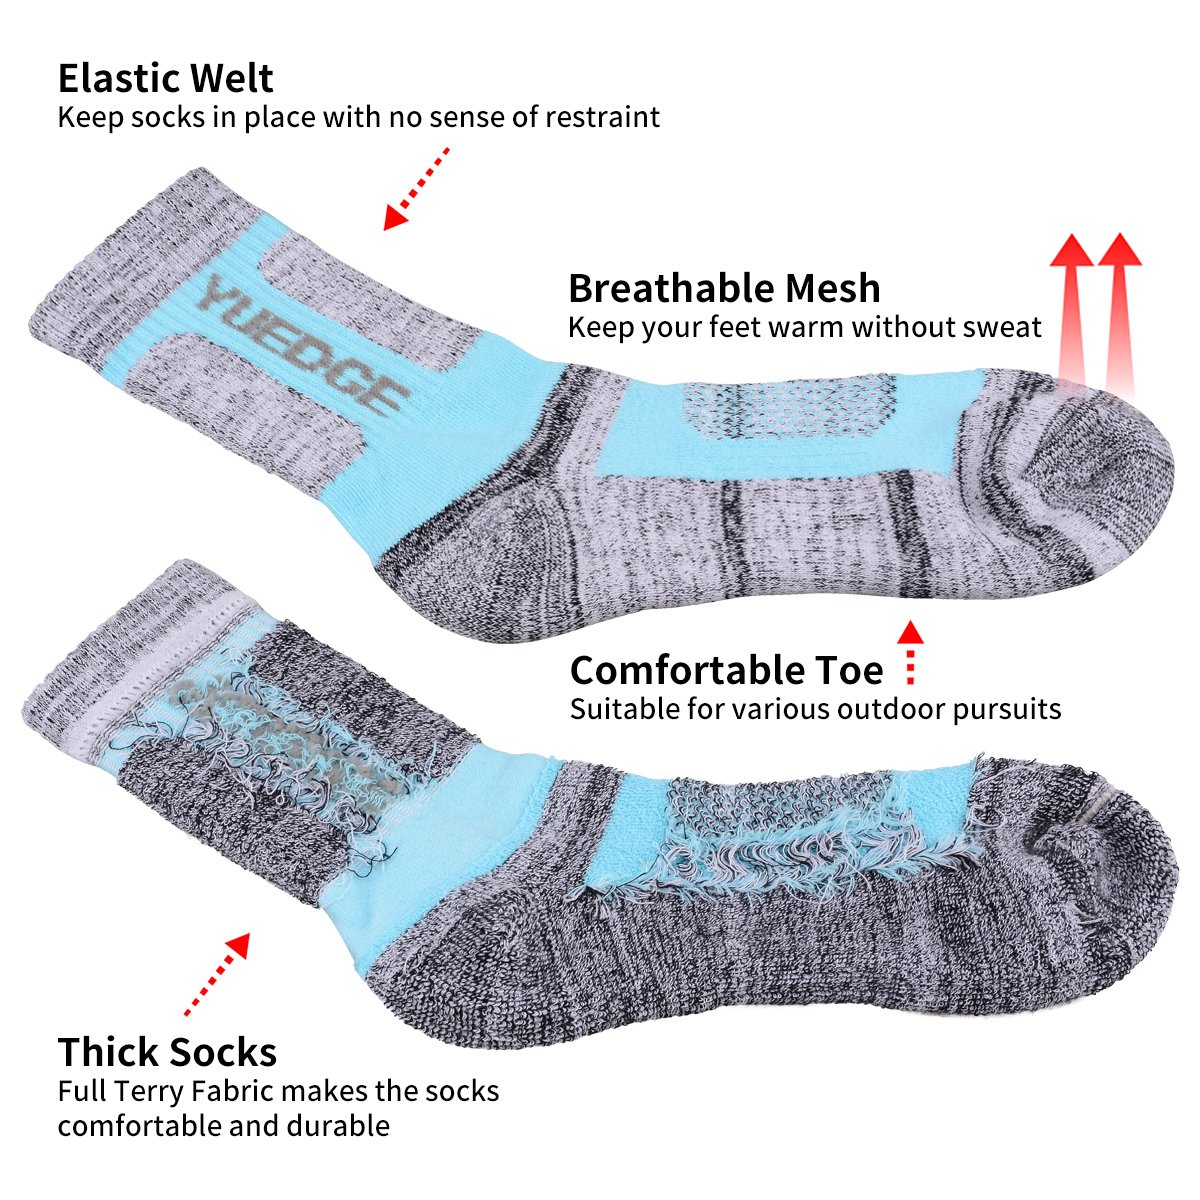 YUEDGE 3 Pairs Women's Women's Wicking Cushion Crew Socks Performance Workout Athletic Sports Socks (L) by YUEDGE (Image #3)